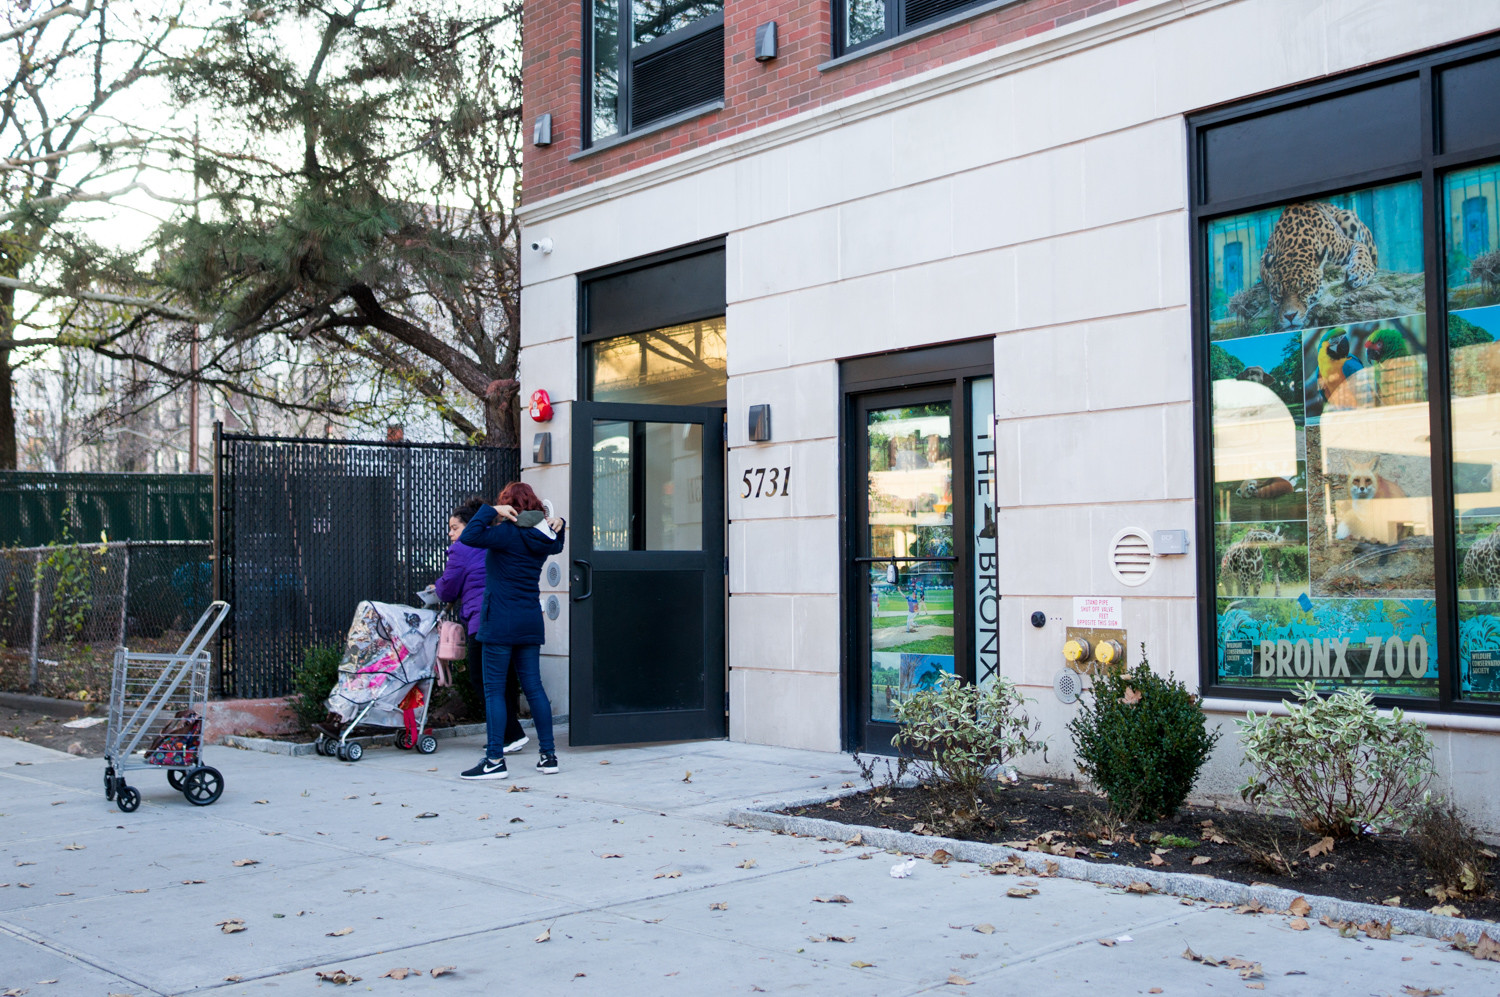 Neither the public nor the media were allowed to attend a recent 'community' meeting involving the new homeless transitional housing facility at 5731 Broadway.